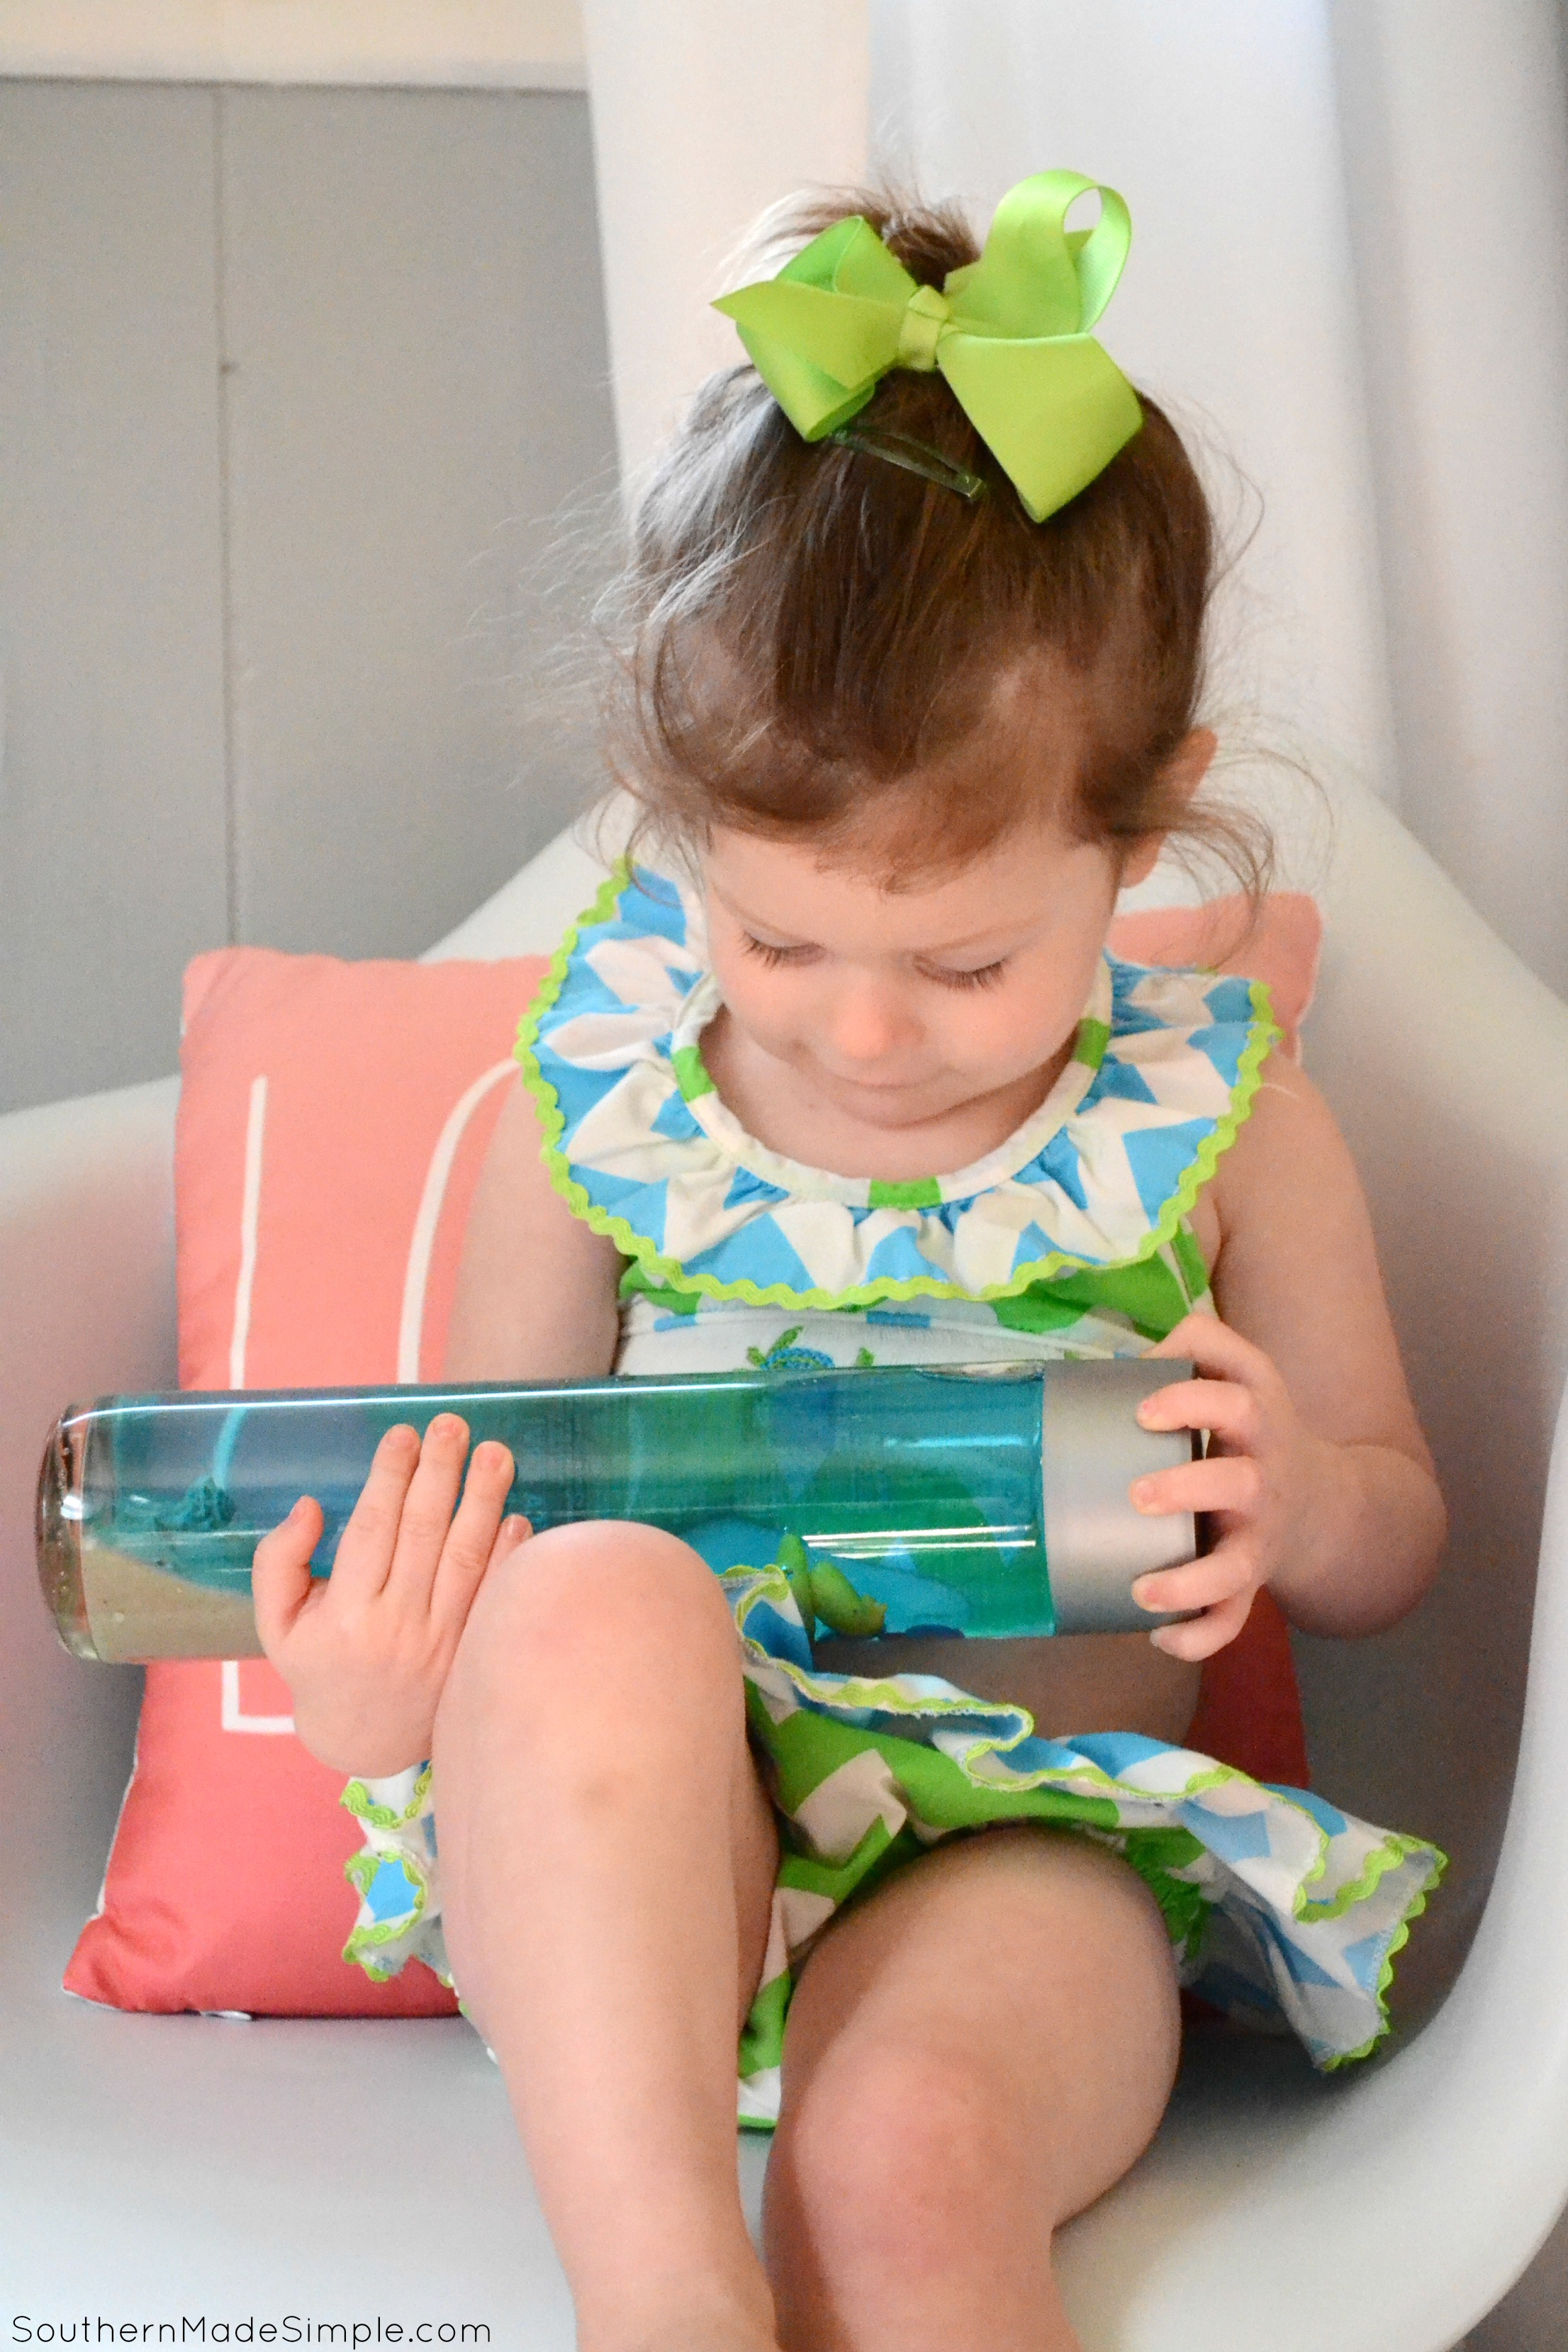 Do you have a toddler in the back seat who hates riding in the car? Take along this easy DIY Ocean Seek and Find Bottle to help keep them entertained!#RoadTripOil #ad